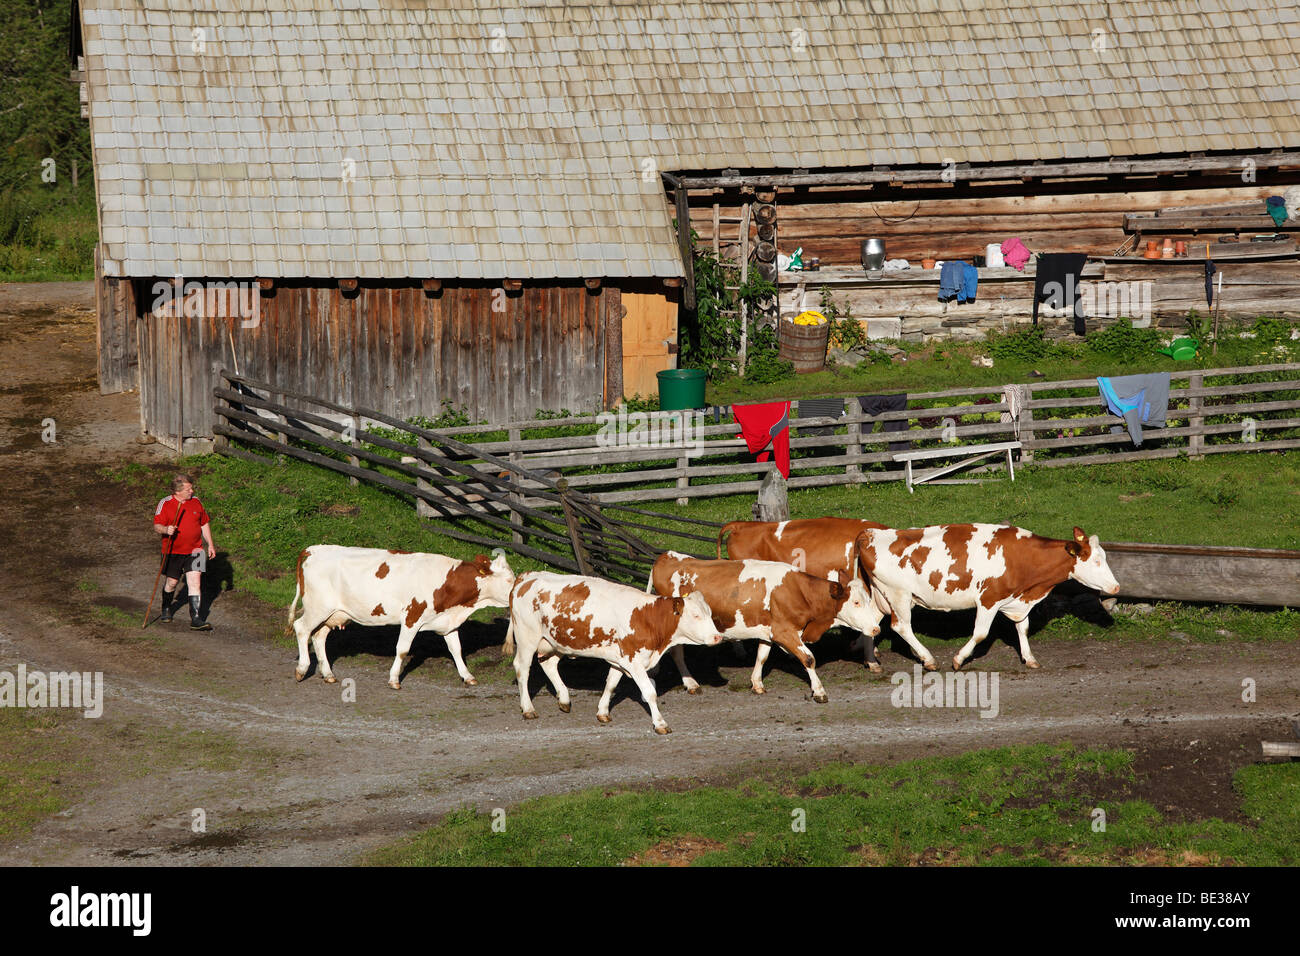 Cows being sent to pasture, farm in Huettwinkltal, Rauris valley, Pinzgau, federal state of Salzburg, Austria, Europe - Stock Image